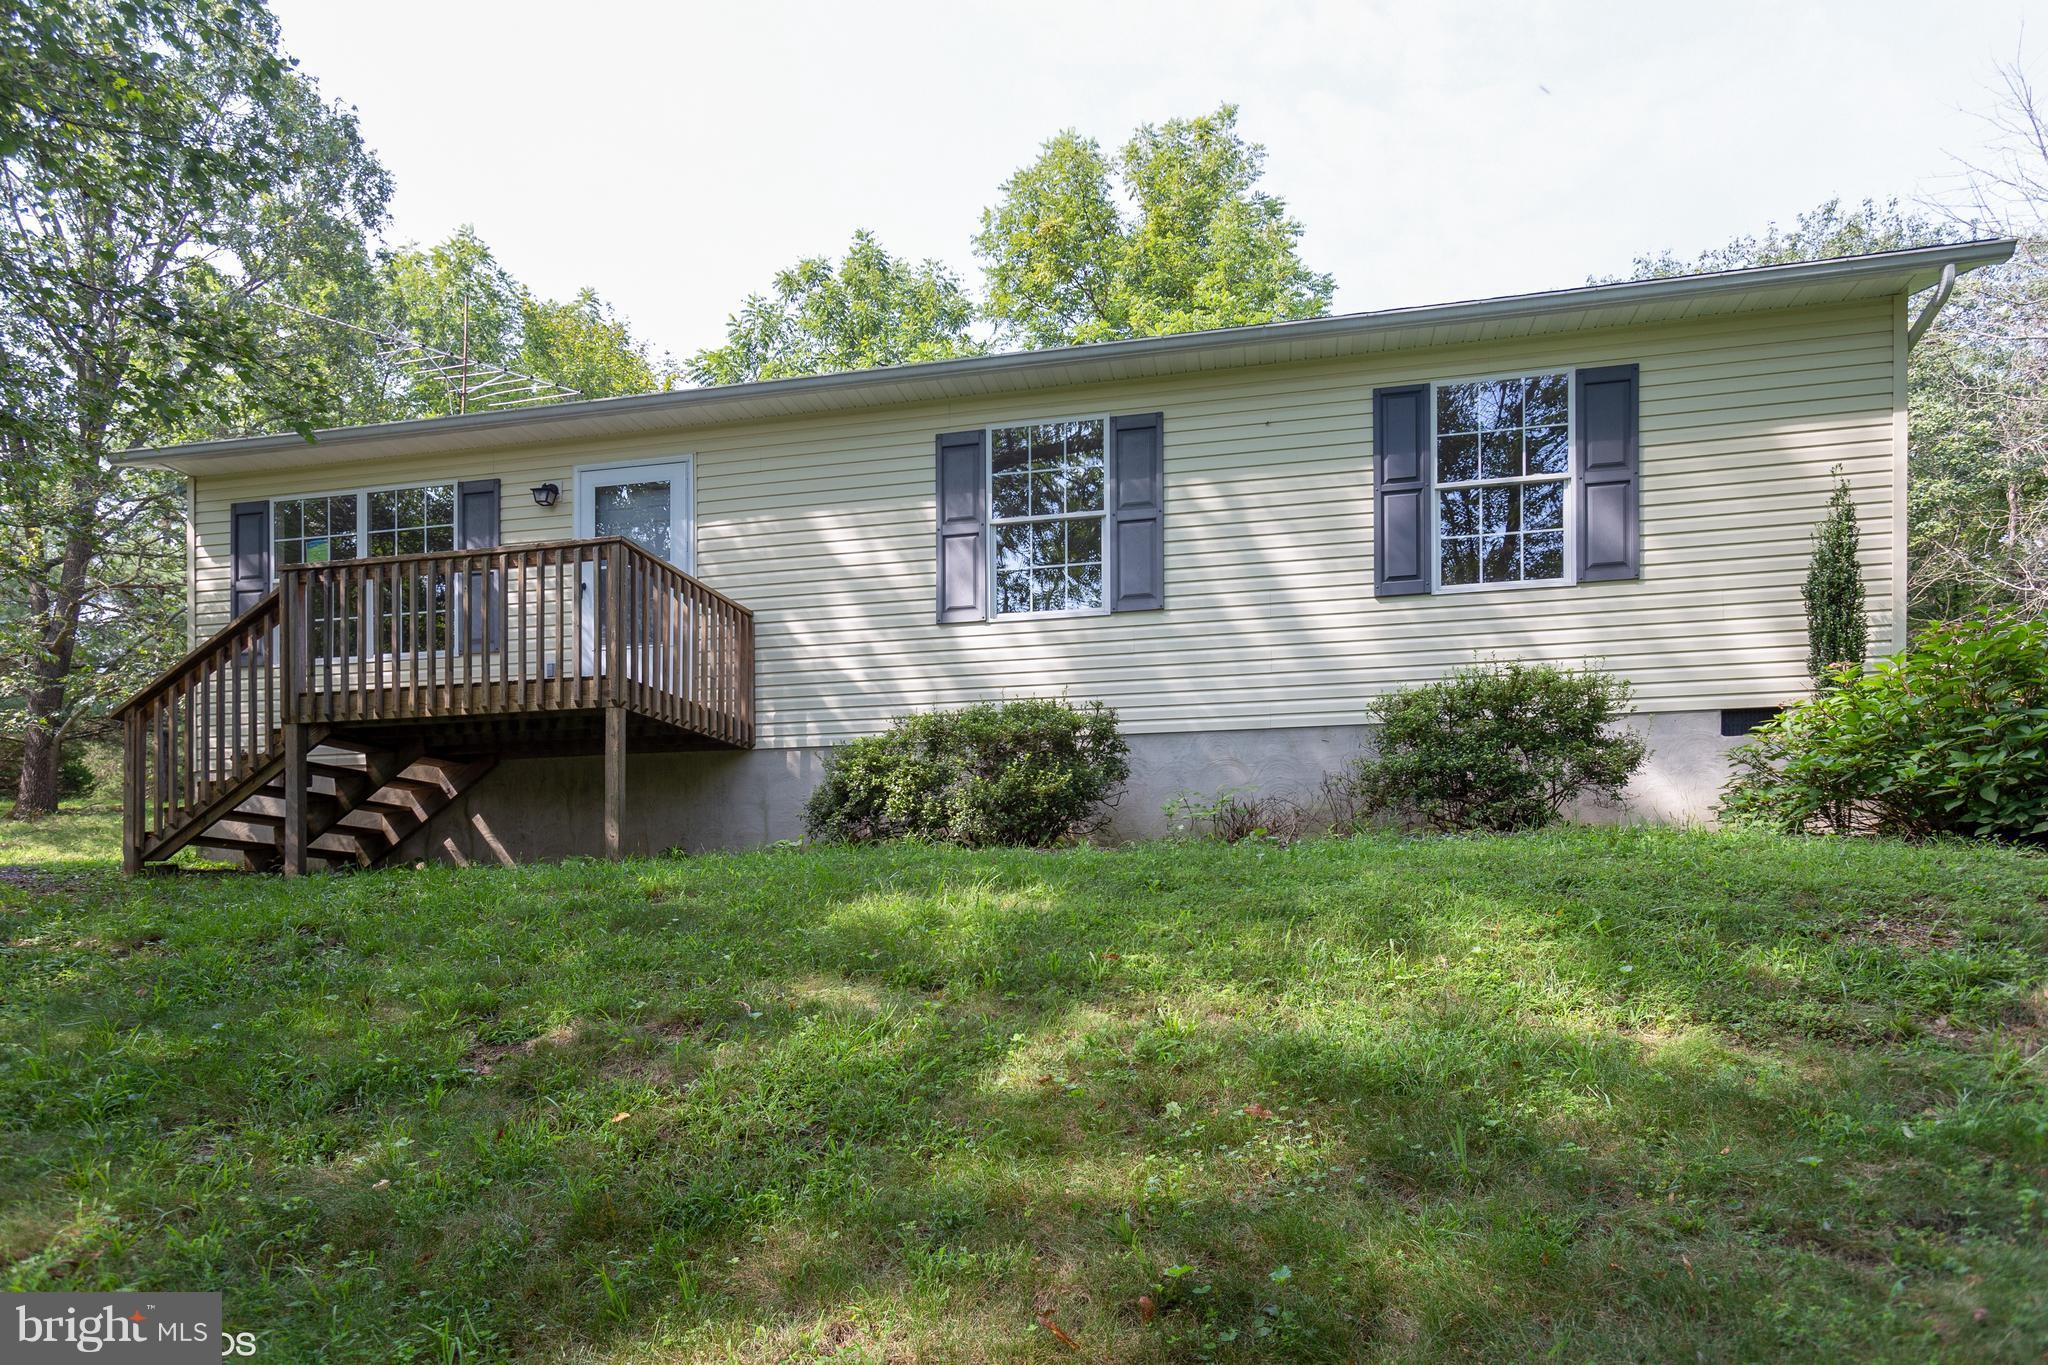 Ranch style come sits on approx. 1.03 ac in Hidden River SD just off Rt 51. Home has recently been refinished with new appliances, paint and carpet and features 3 BRs, 2 full BAs and a large, detached garage.